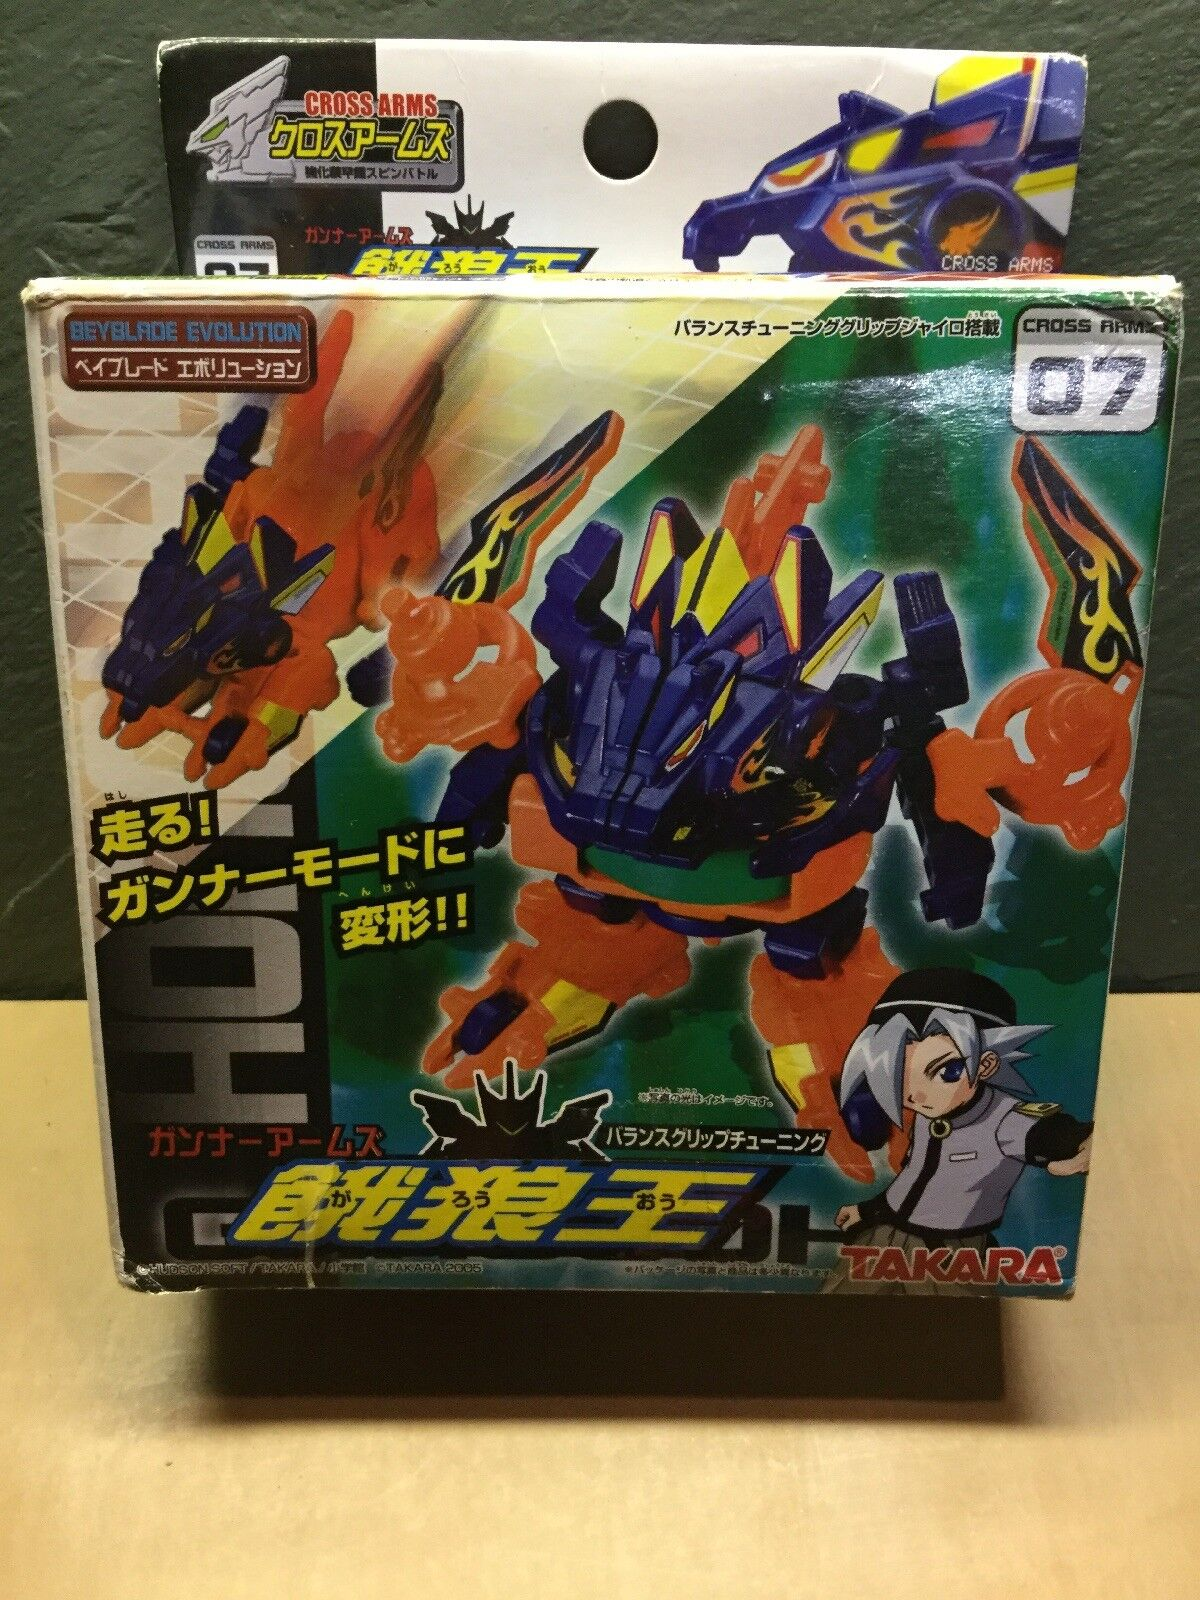 BEYBLADE Evolution  Cross Arms 07 2005 TAKARA  EXTREMELY RARE  New And Mint